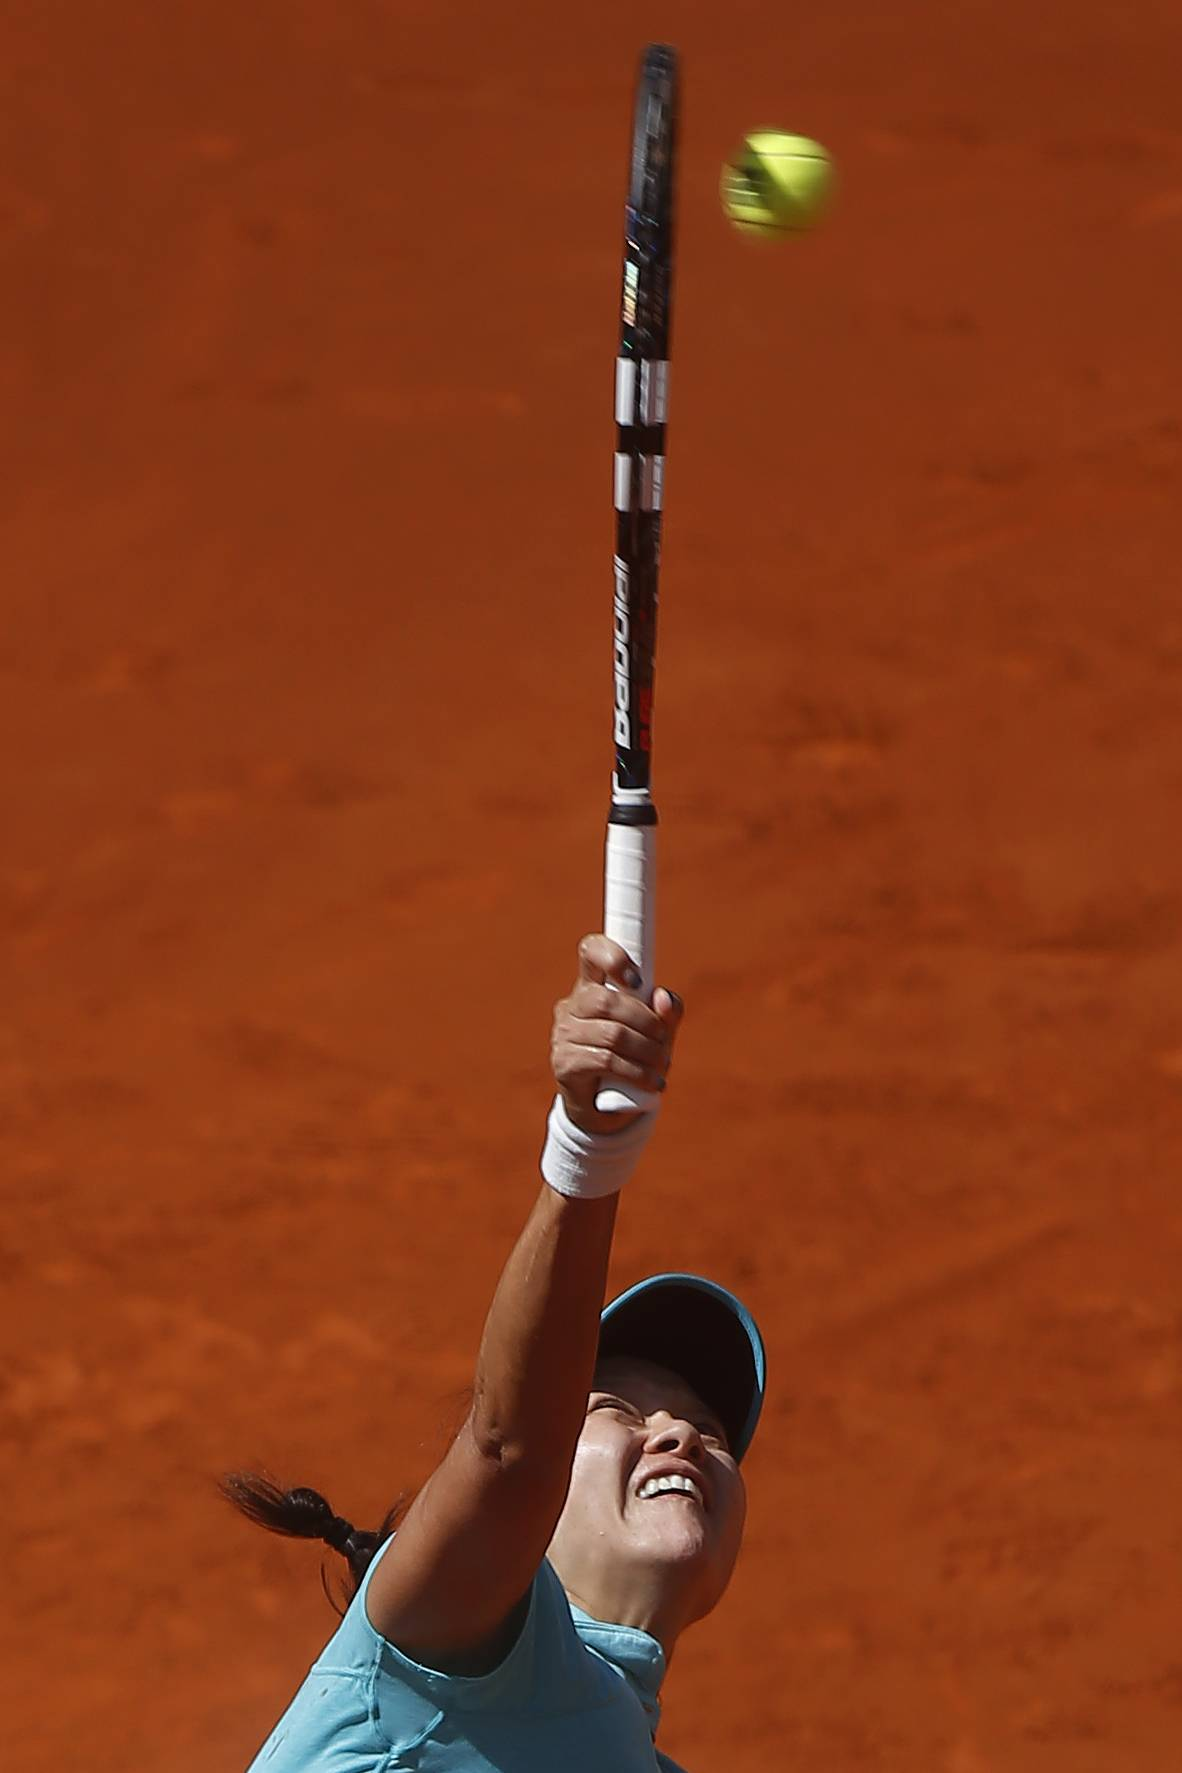 Li Na from China serves during a Madrid Open tennis tournament match against Jie Zheng from China, in Madrid, Spain, Tuesday, May 6, 2014.